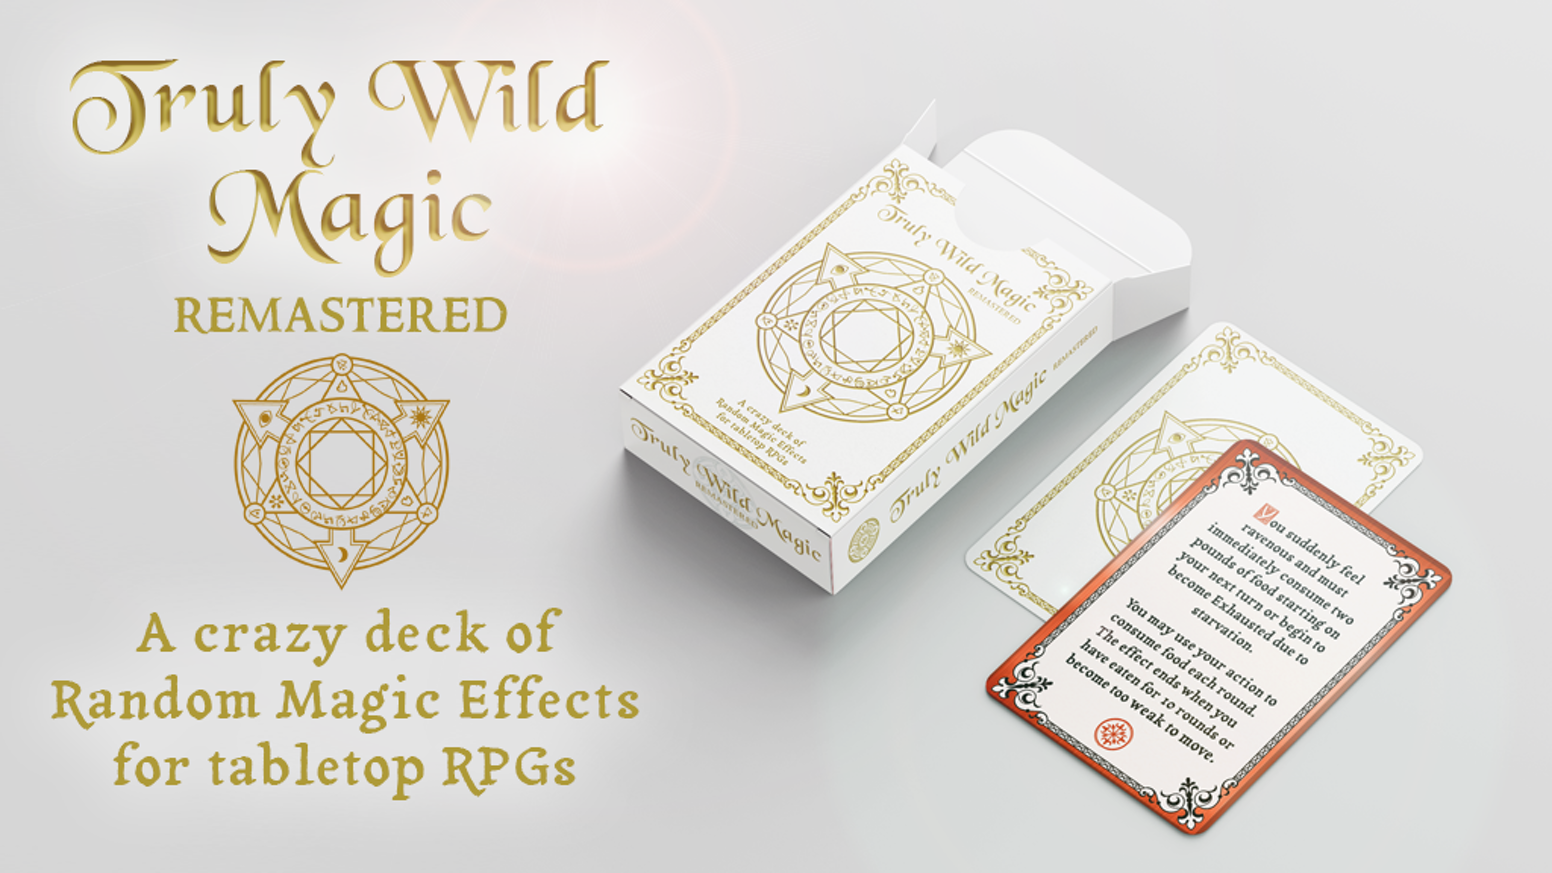 Freshly re-imagined, now more expertly realized card deck based on the original cards created for 5e & other TTRPG's!